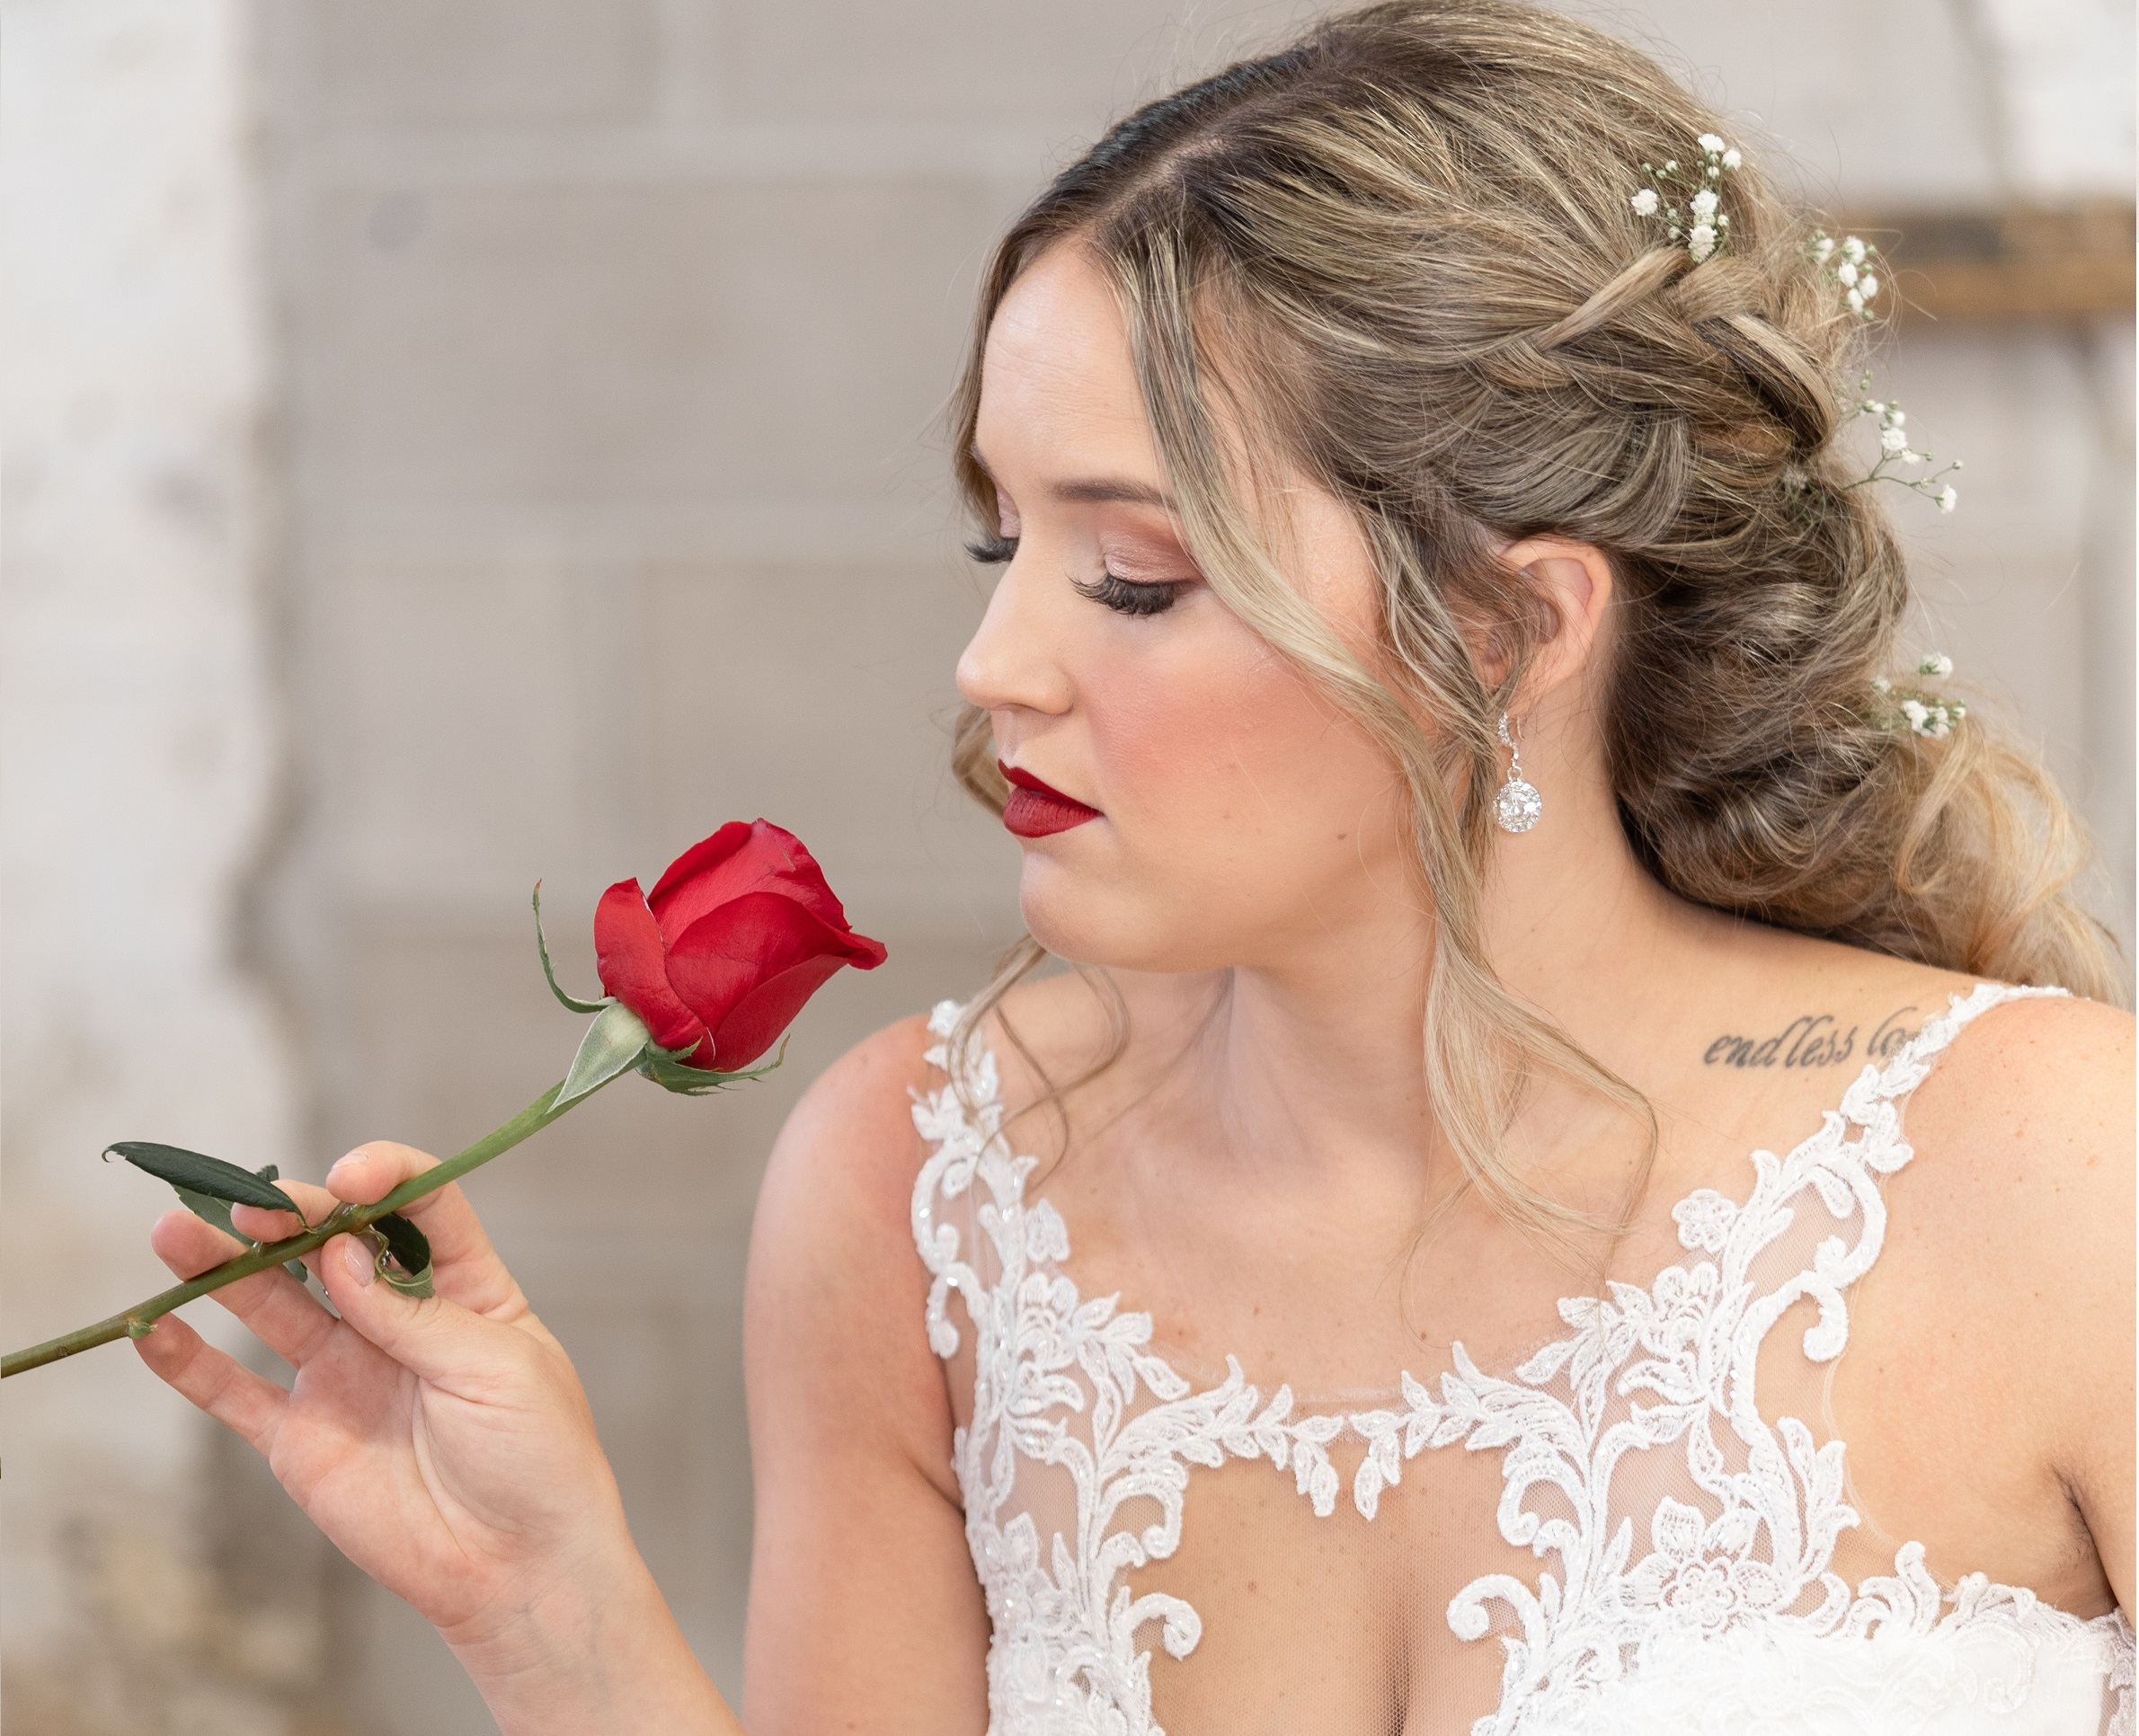 Beauty by Stacey bridal hair bridal makeup